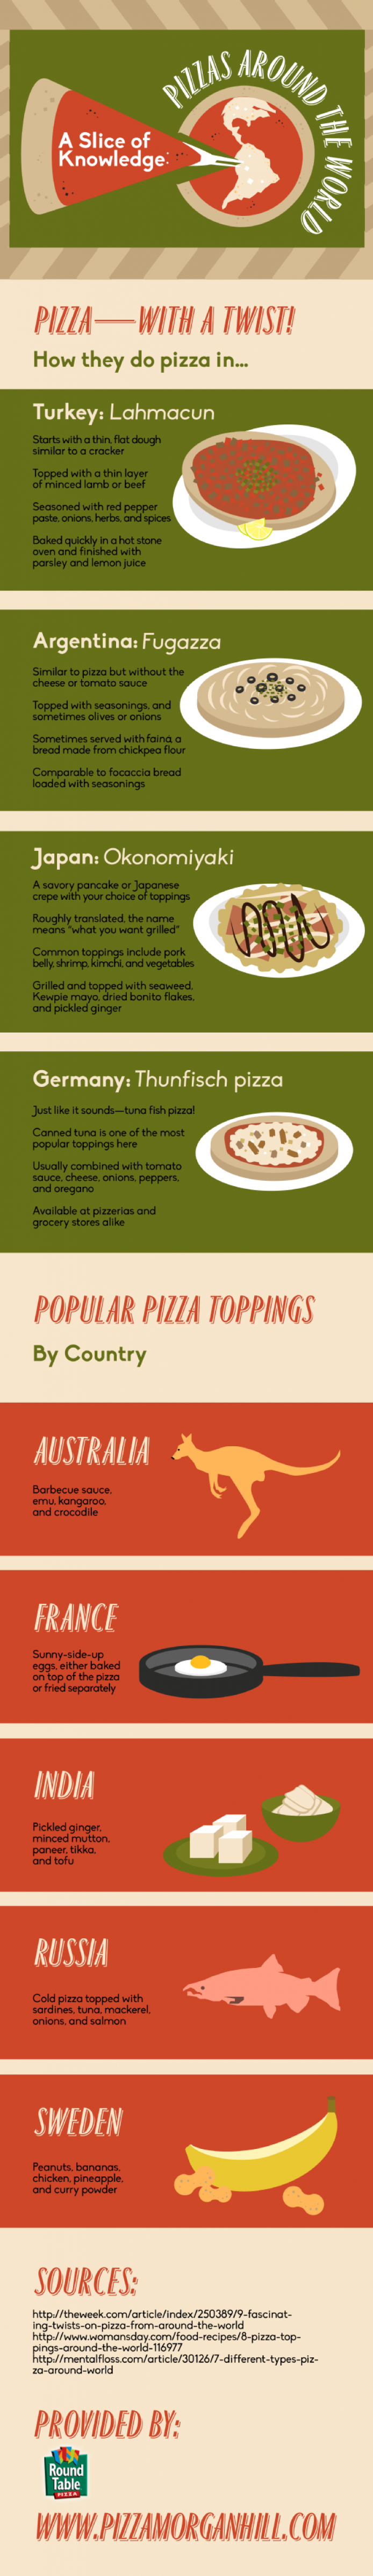 A Slice of Knowledge: Pizzas Around the World